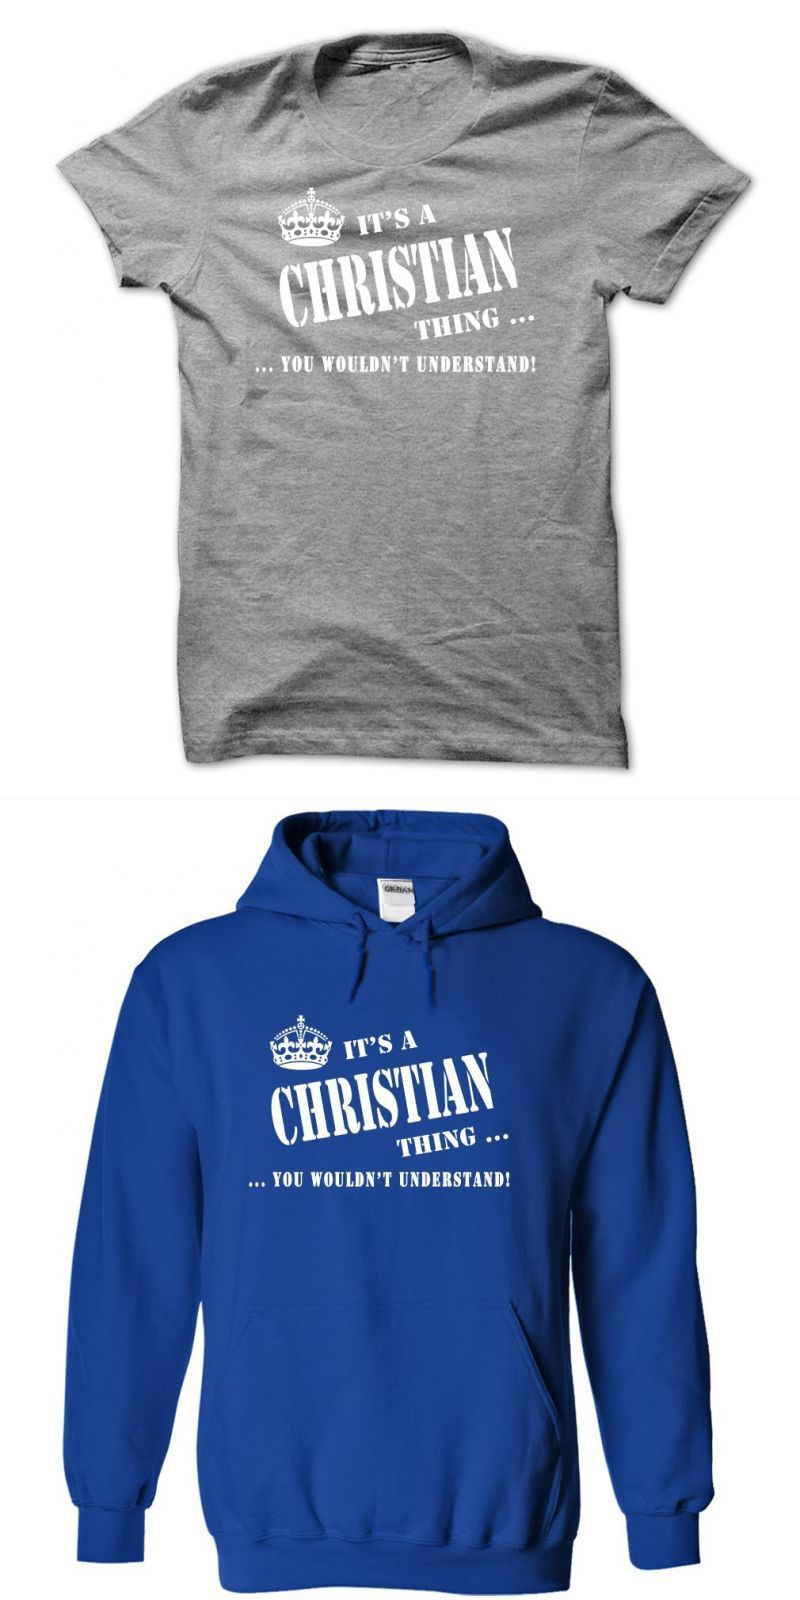 buy christian t shirt fundraiser 63 off